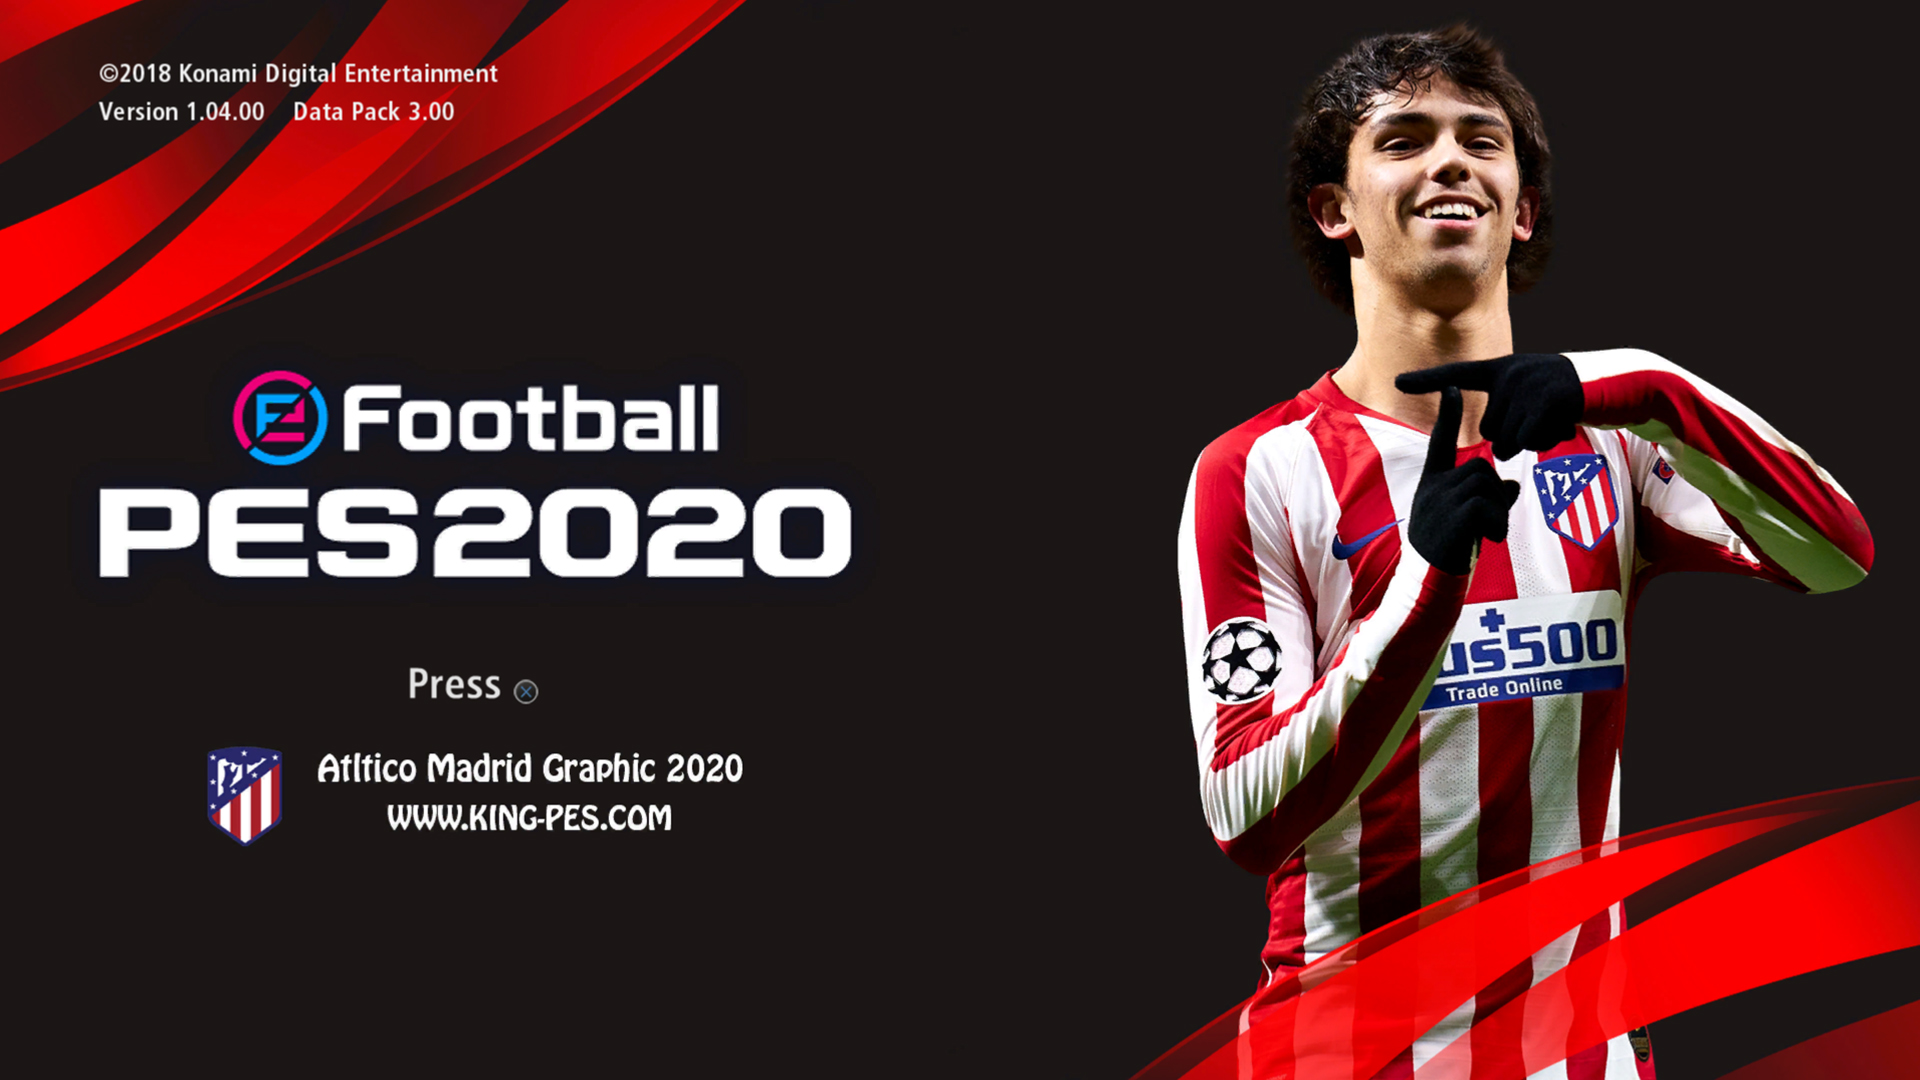 Gaming With Tr On Twitter Pes 2017 Atletico Madrid Pes 2020 Graphic Menu Video Preview Https T Co Cmduqcc9z3